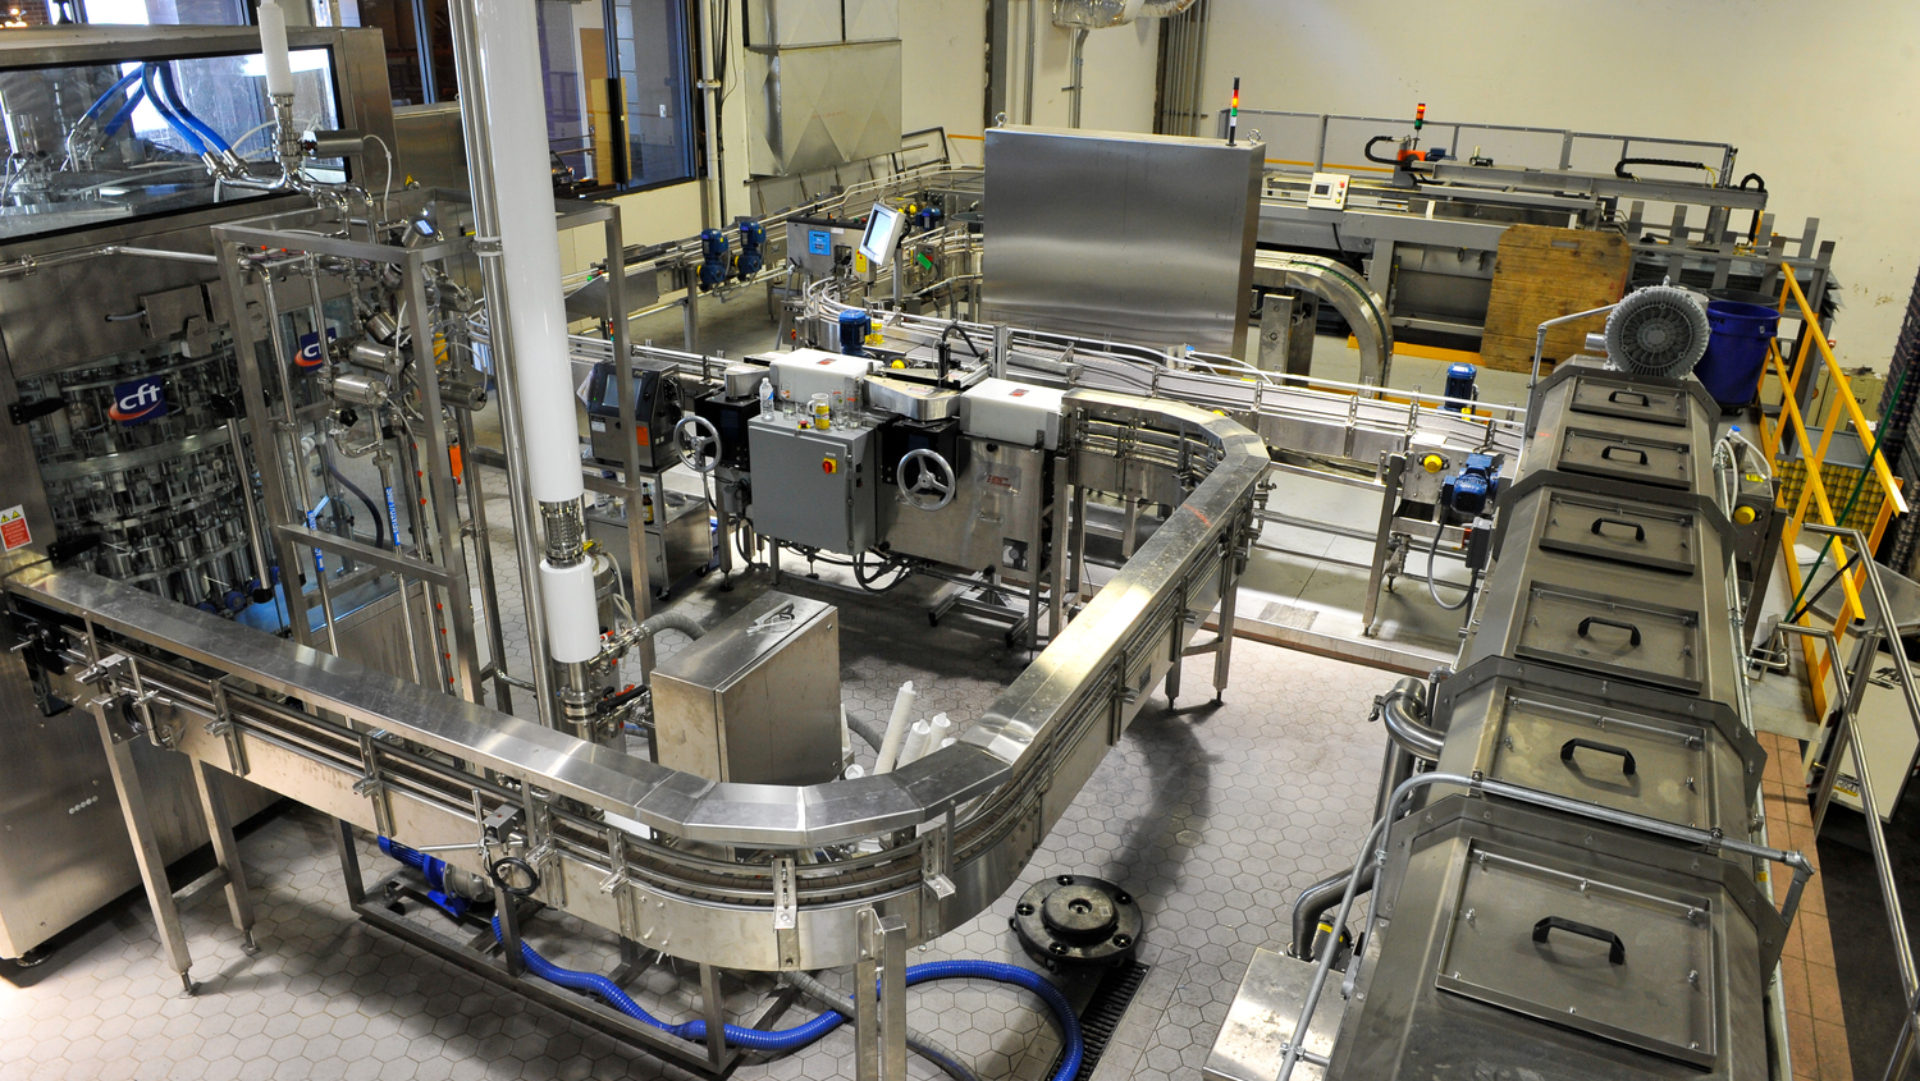 VanZyverden Inc. Filling and Packaging Machinery Sales, Engineering, Sales, Installation and Service.